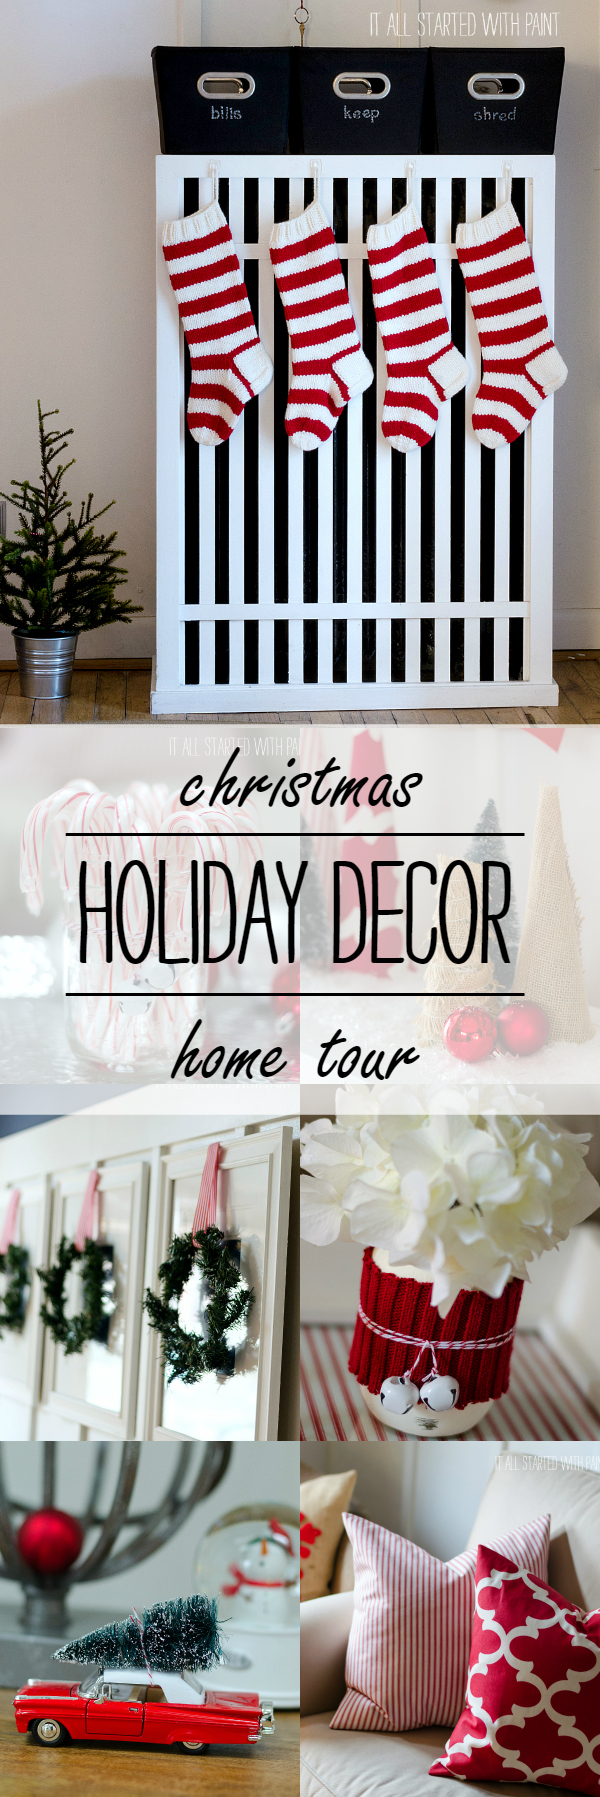 Christmas Decorating Ideas Using Red and White